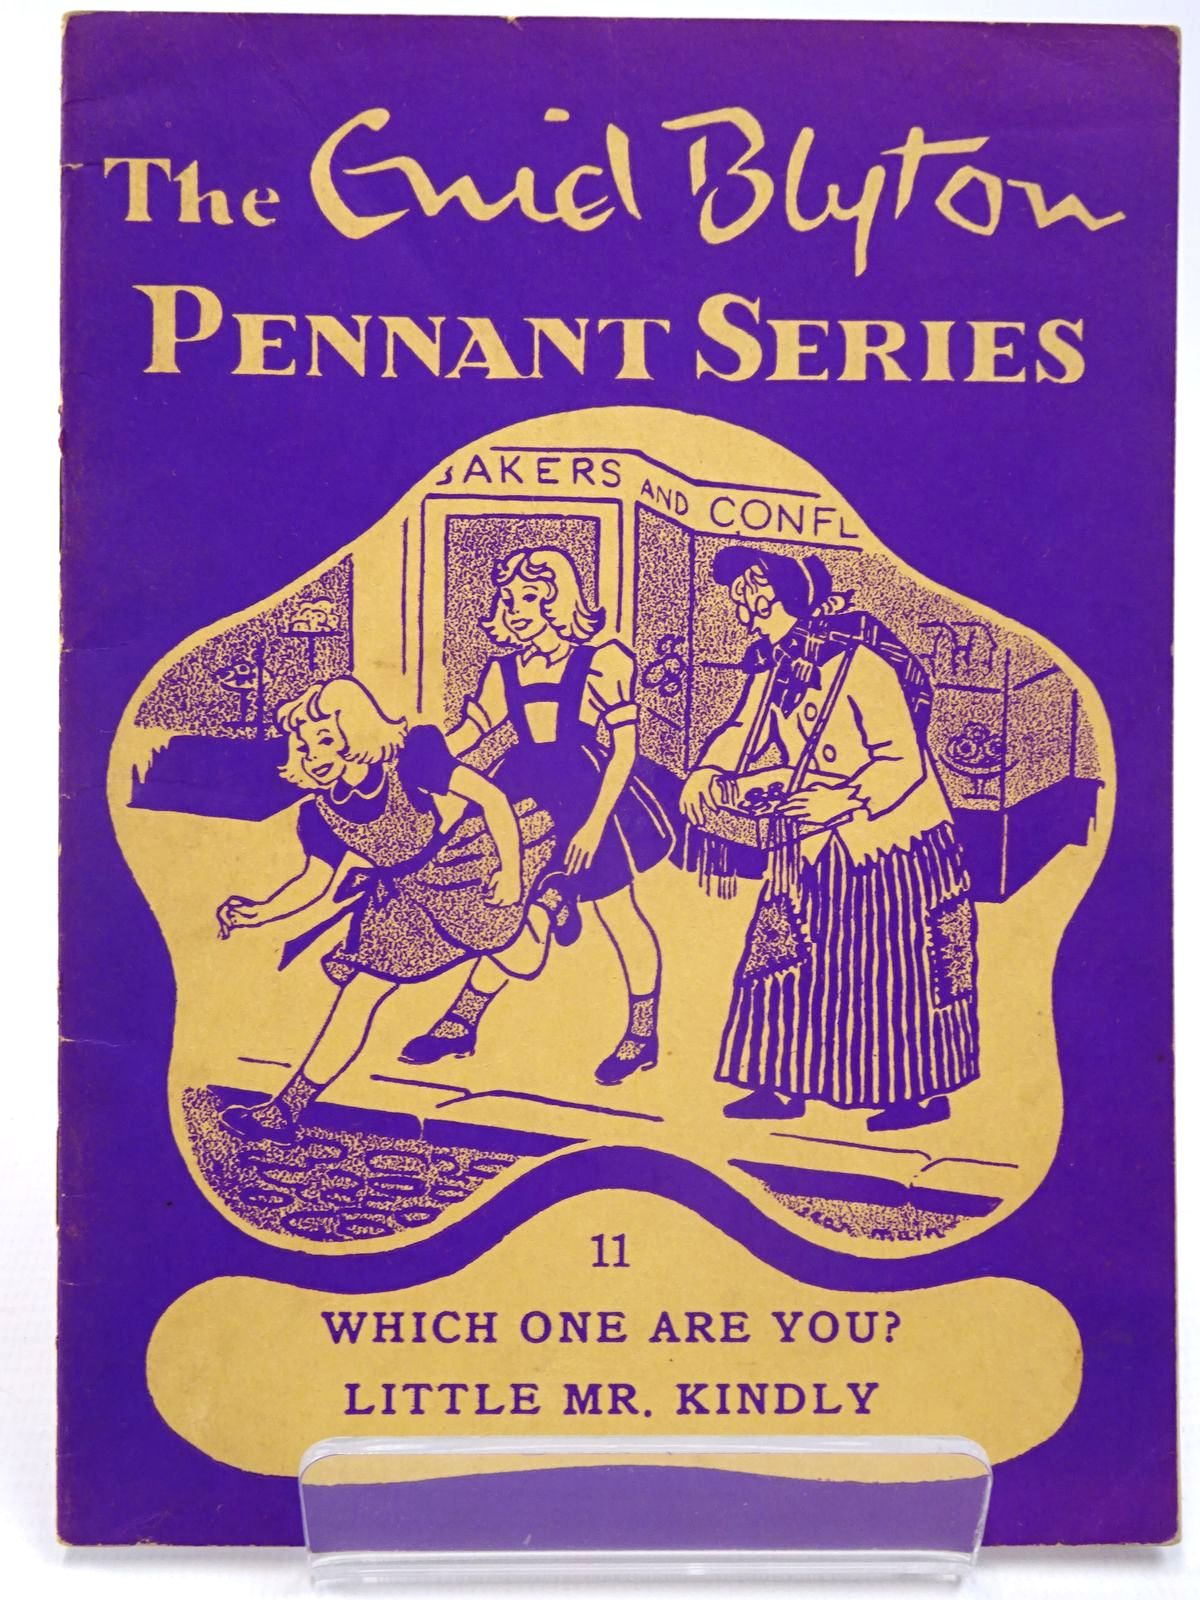 Photo of THE ENID BLYTON PENNANT SERIES No. 11 WHICH ONE ARE YOU? / LITTLE MR. KINDLY written by Blyton, Enid illustrated by Soper, Eileen Main, Jean published by Macmillan & Co. Ltd. (STOCK CODE: 2130521)  for sale by Stella & Rose's Books